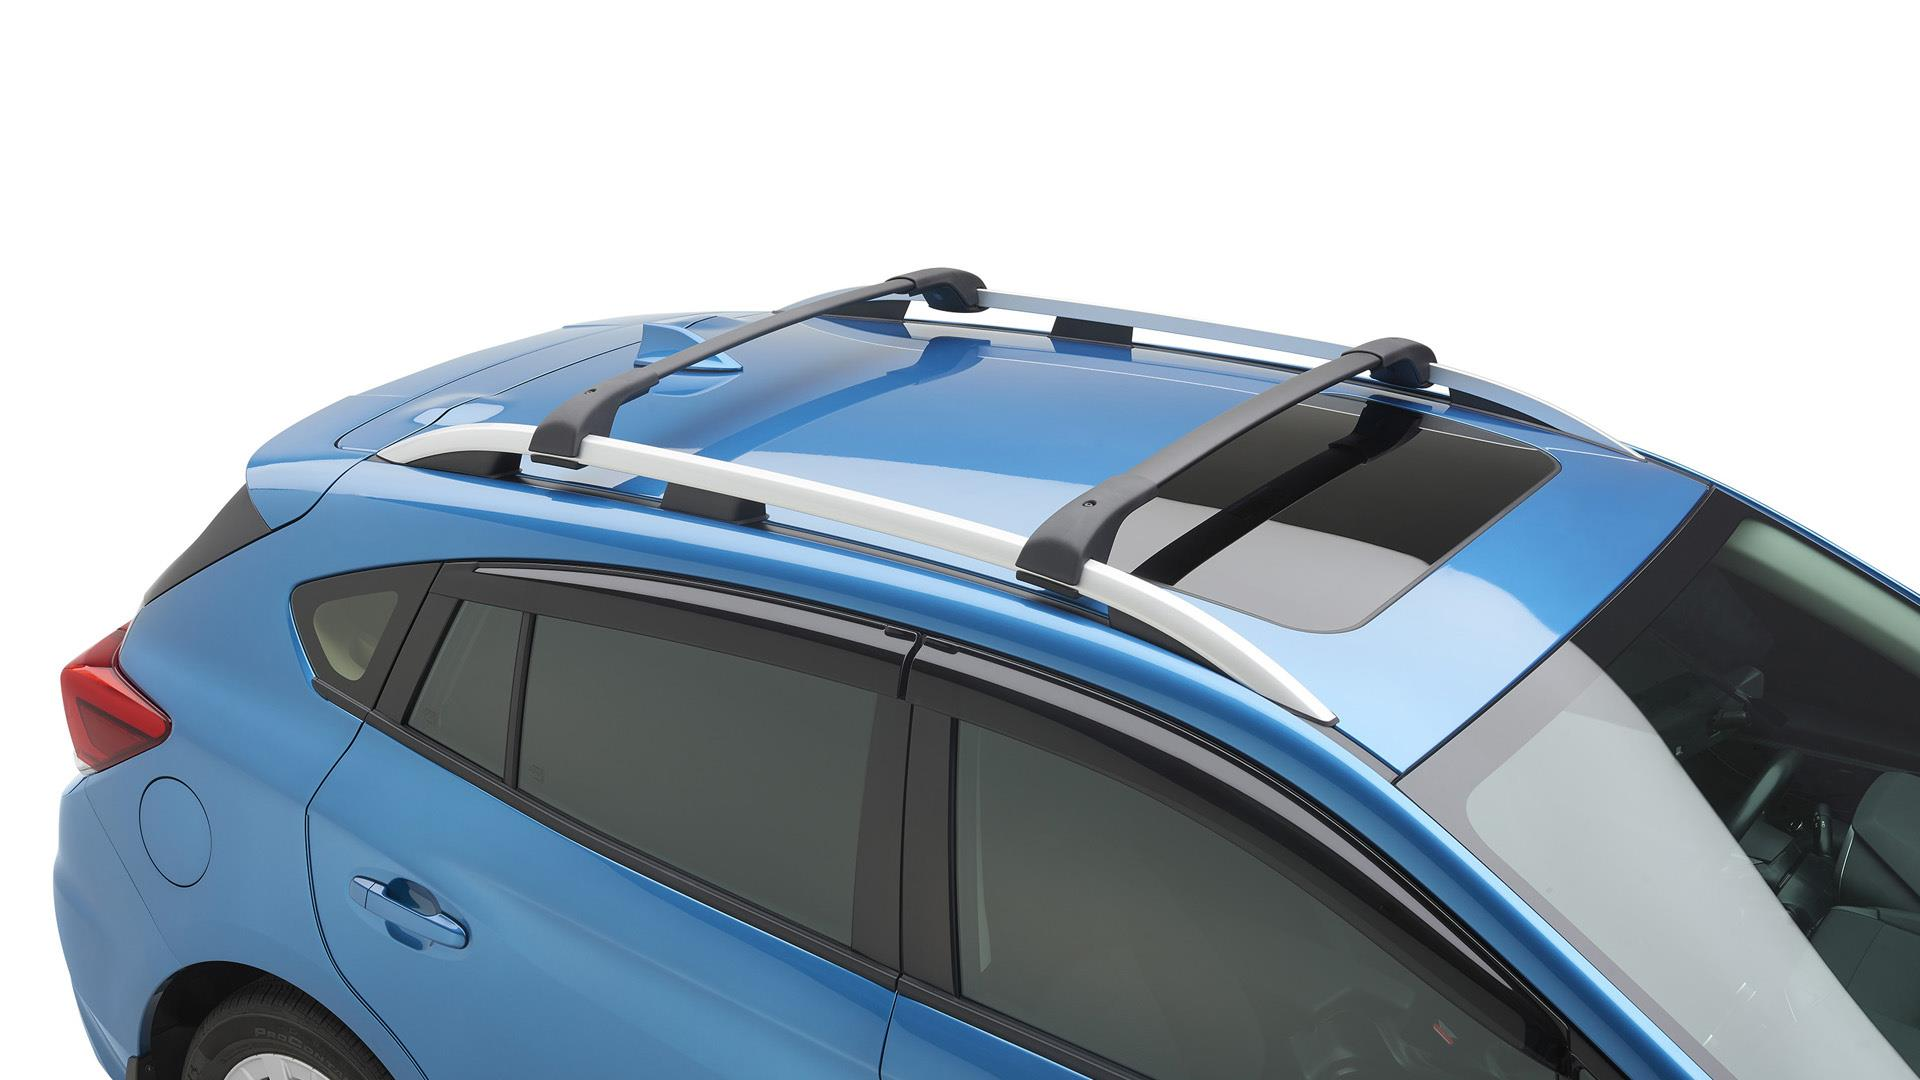 B000QV1WSM together with 2017 Subaru Impreza Roof Rack as well 2009 Ford Fusion Roof Rack By Thule Roof Rack Includes Thule Aeroblade A66f35a09eecaa06 furthermore Subaru Impreza Aerodynamic Roof Rack Cross Bar For Subaru F34c0a1483ea242f together with parison. on thule aero rack outback